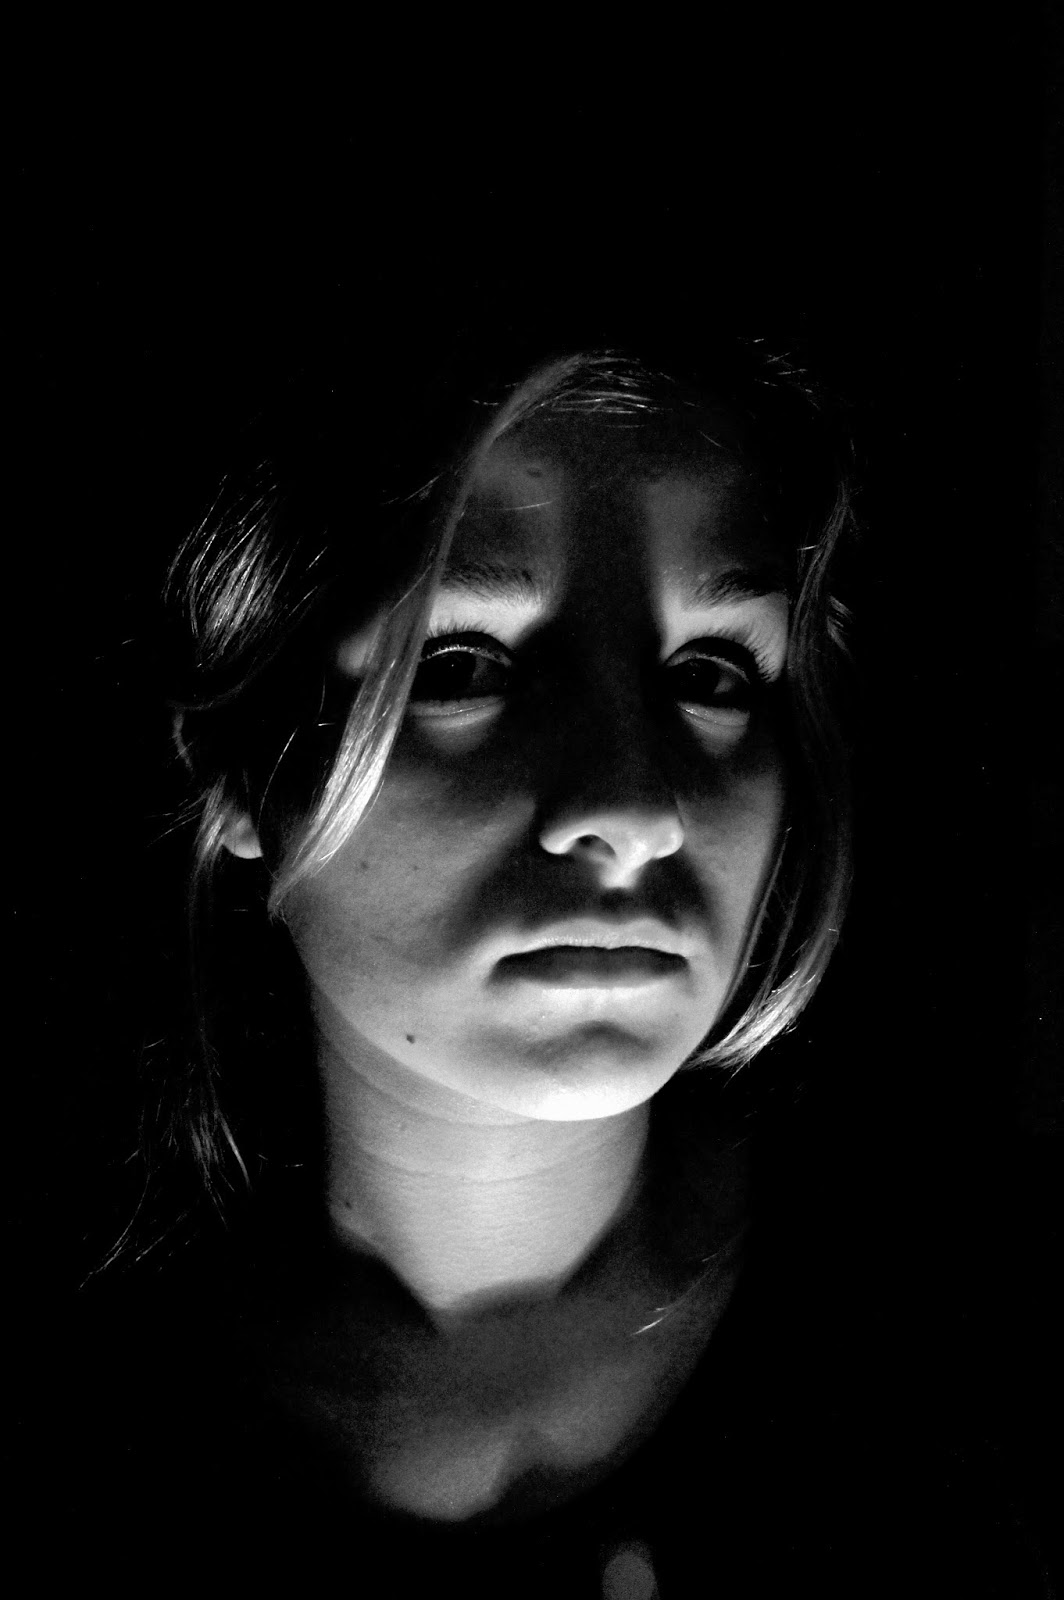 horror lighting. Firstly I Looked At Portraiture And How Lighting Could Be Used To Create An Atmosphere Of Horror. It\u0027s A Well Known Thing That Placing Light Under Your Horror